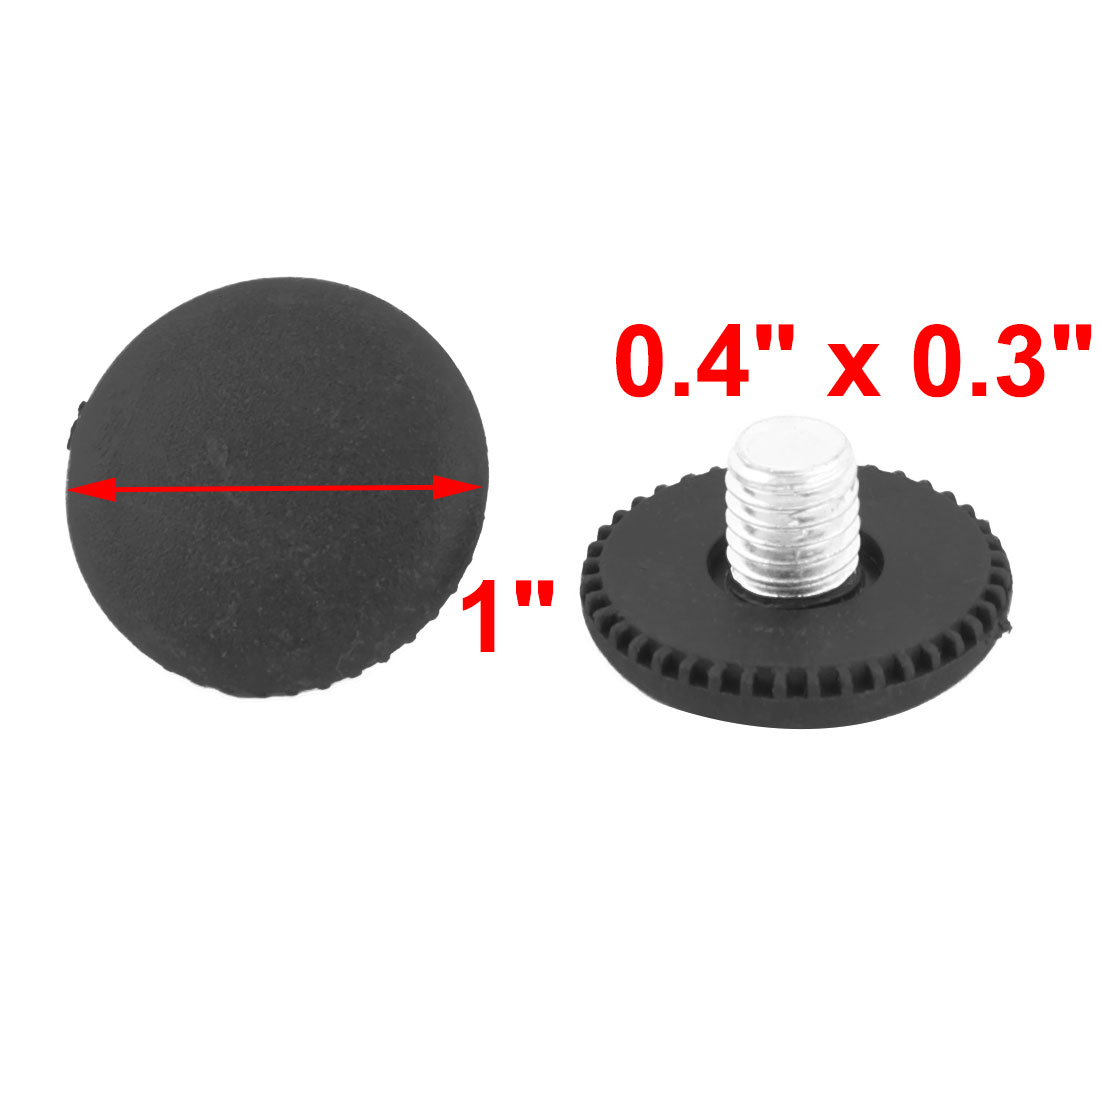 Living Room Plastic Round Adjustable Non-slip Furniture Leg Leveling Foot 50 Pcs - image 2 of 3